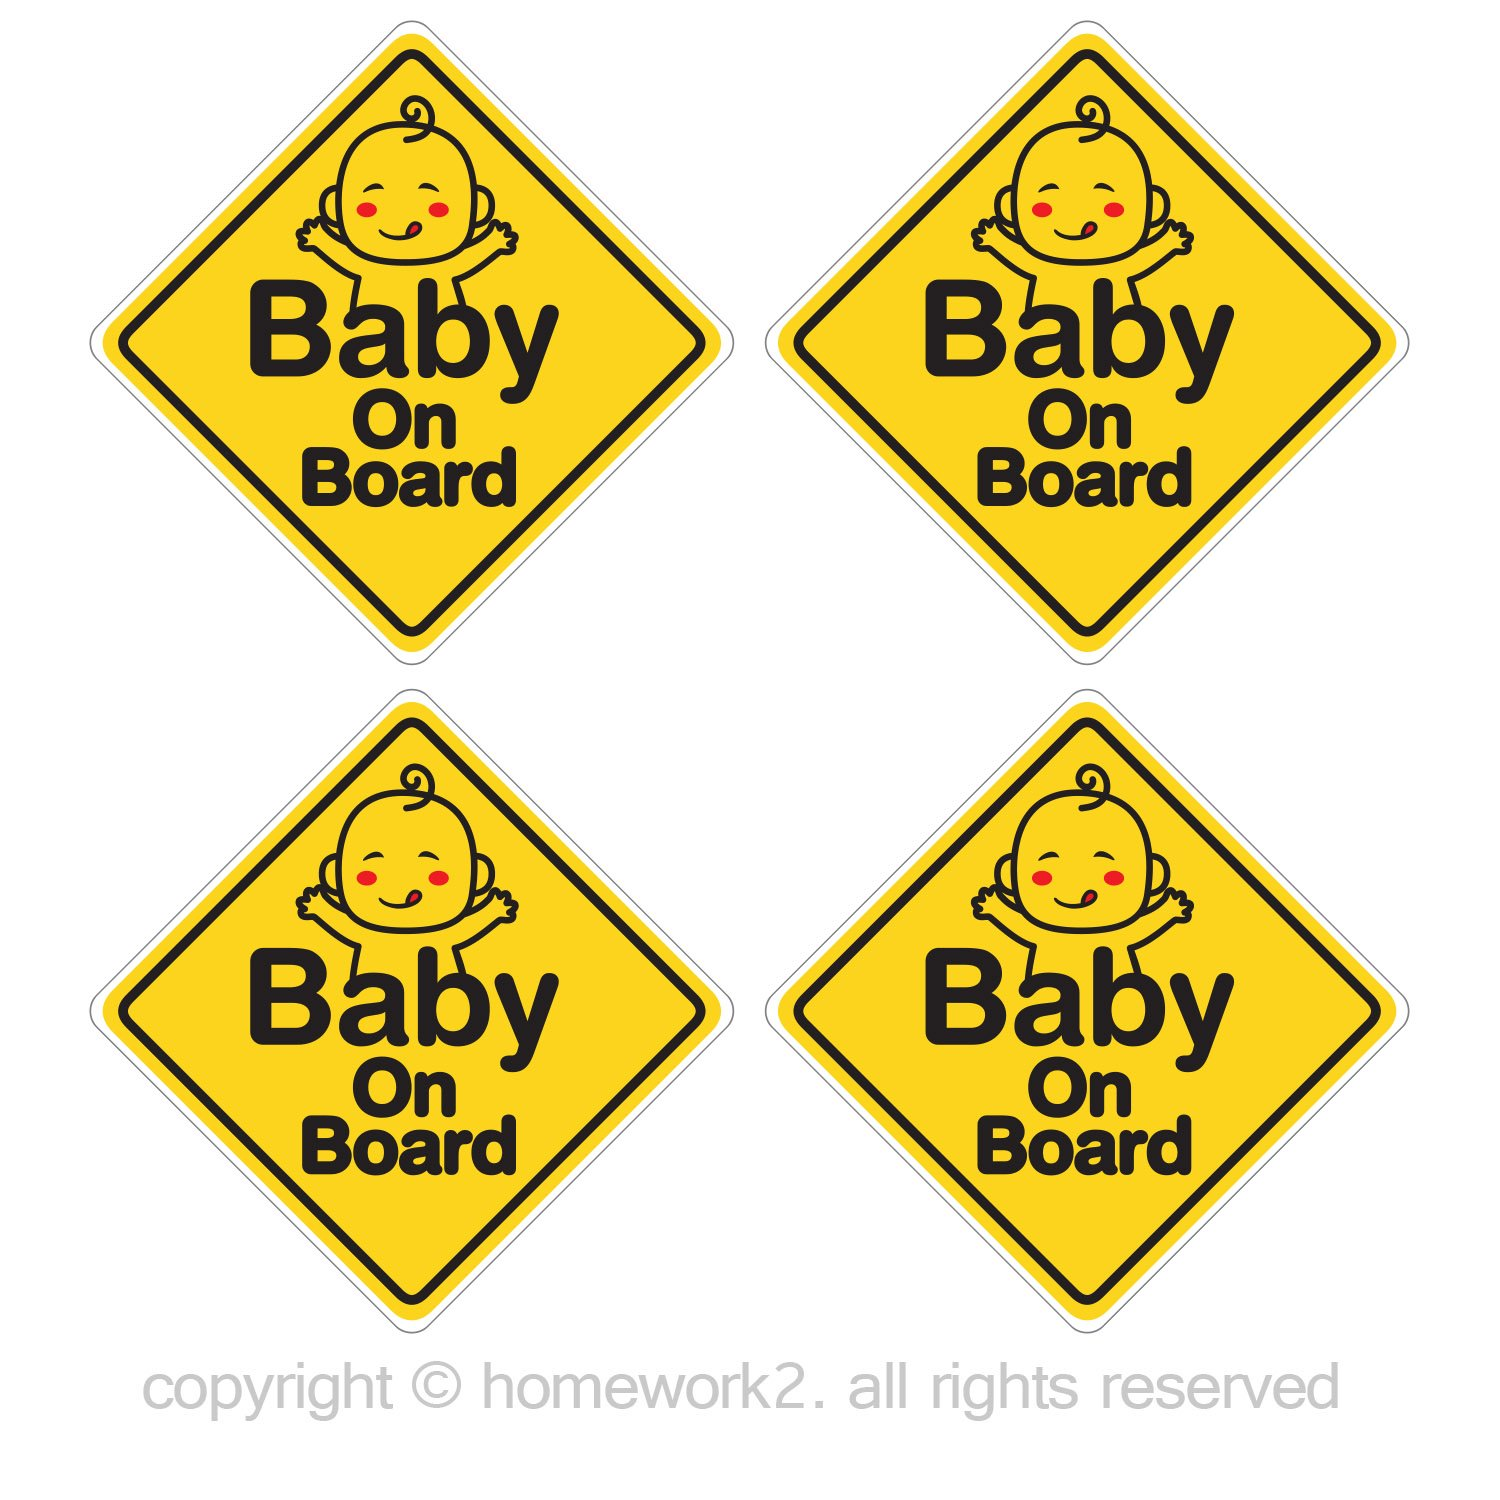 Homework2 Baby On Board Stickers for baby safety sign, Vinyl Decals, UV Protected & Waterproof, 4 X 4 Inch - 4 Labels